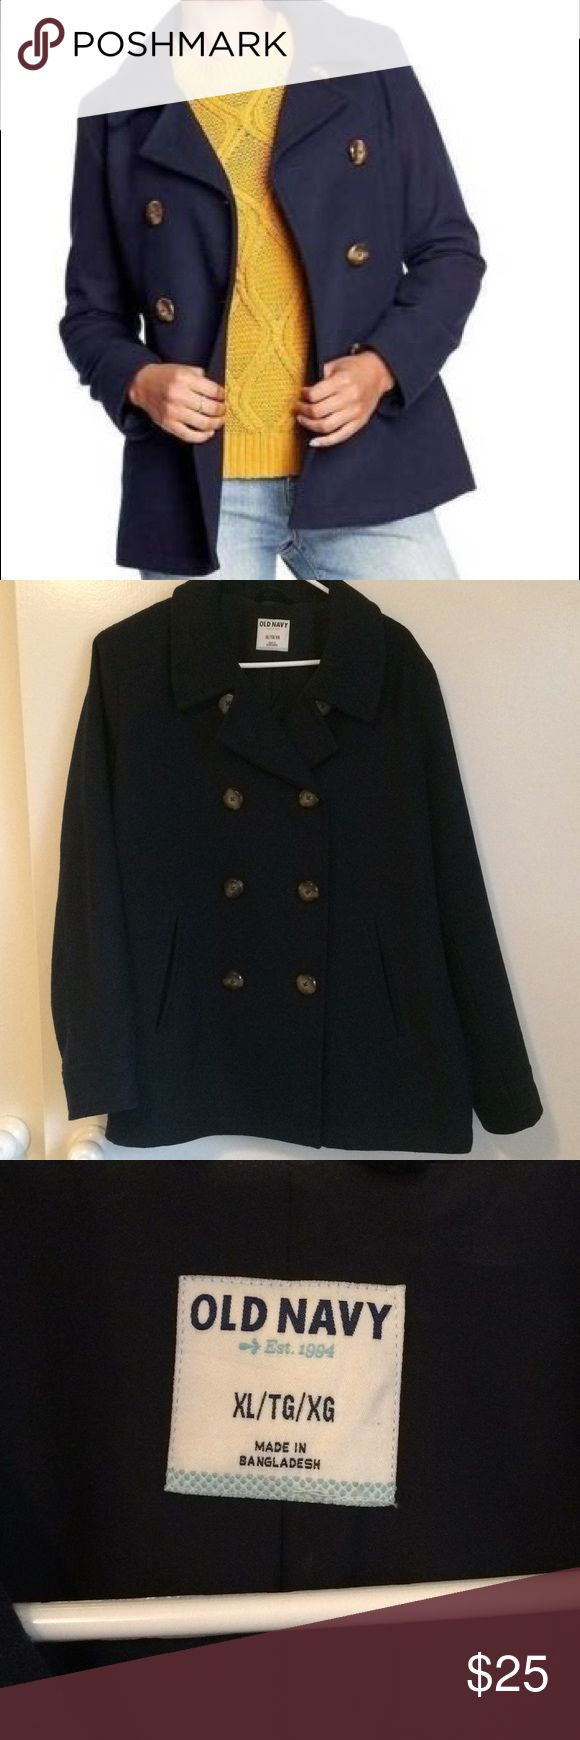 Old Navy Pea Coat I only ended wearing this maybe once. It just never got cold enough! So it's like new and it is a dark blue color. True to XL size and it very comfortable and stylish! An essential and classic piece for any winter wardrobe! Old Navy Jackets & Coats Pea Coats